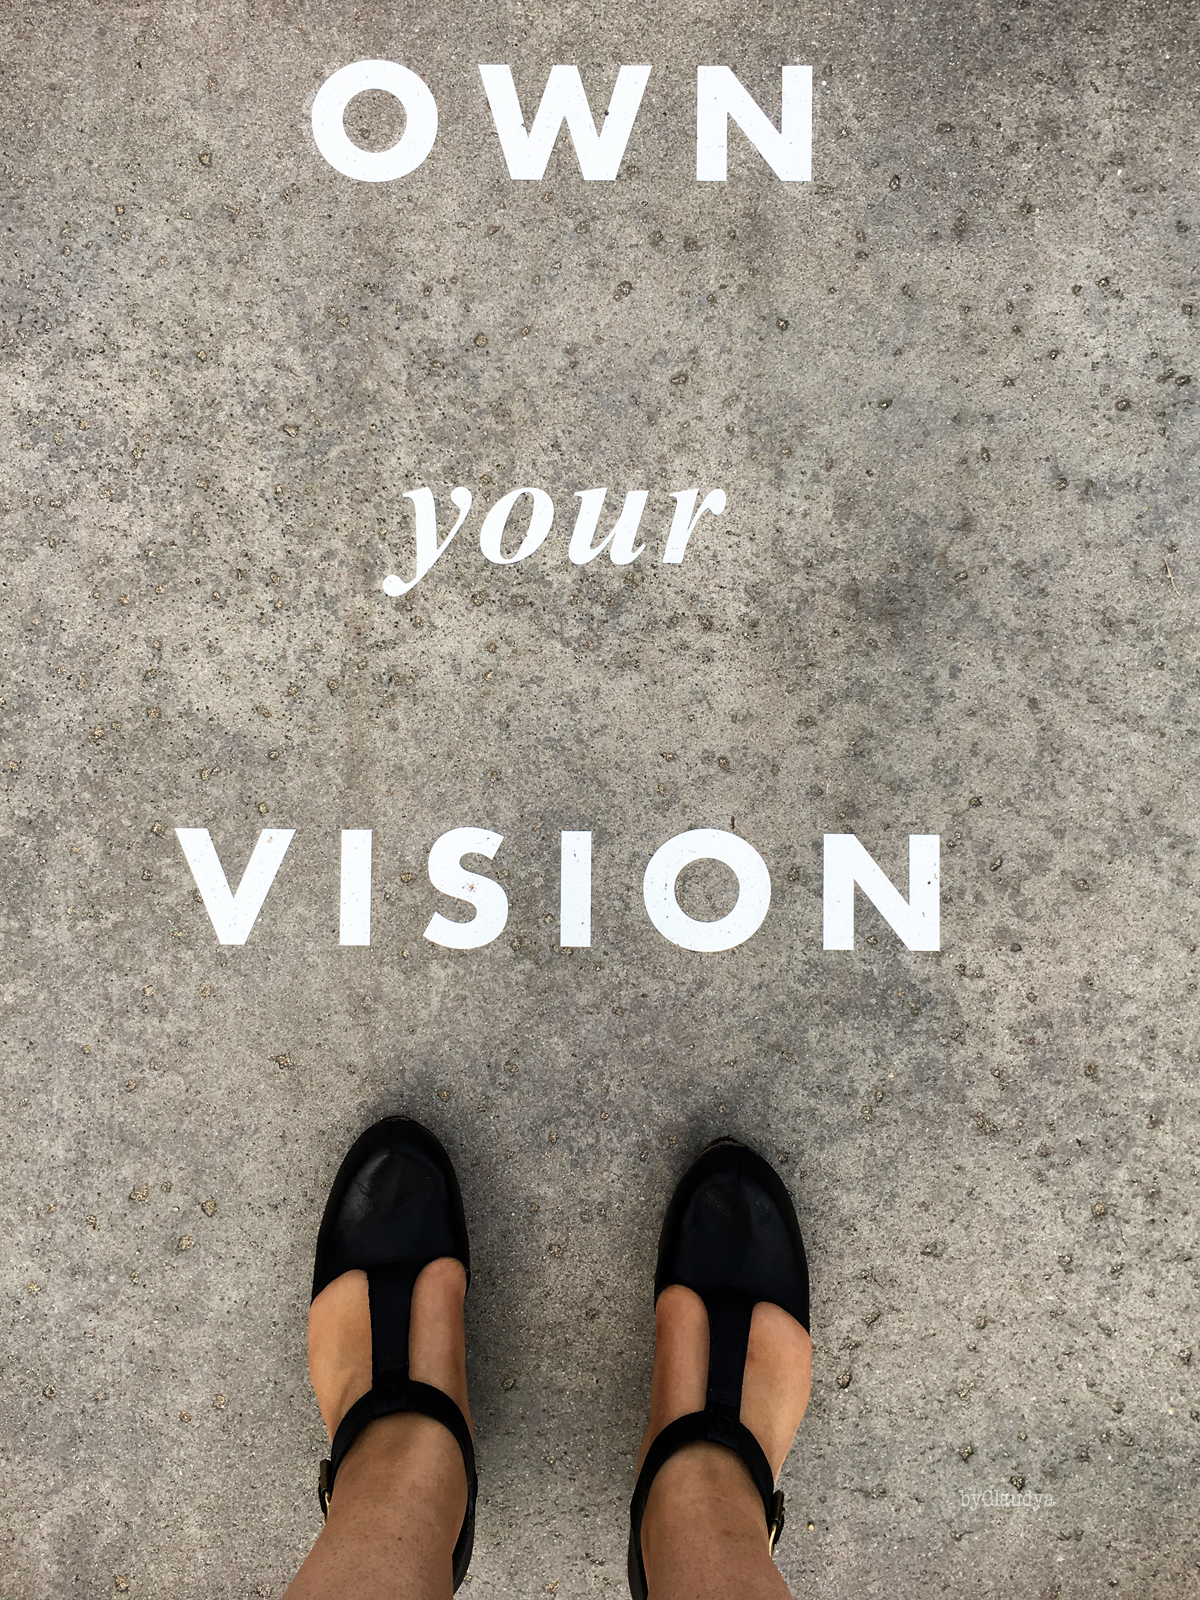 Own Your Vision #WAG